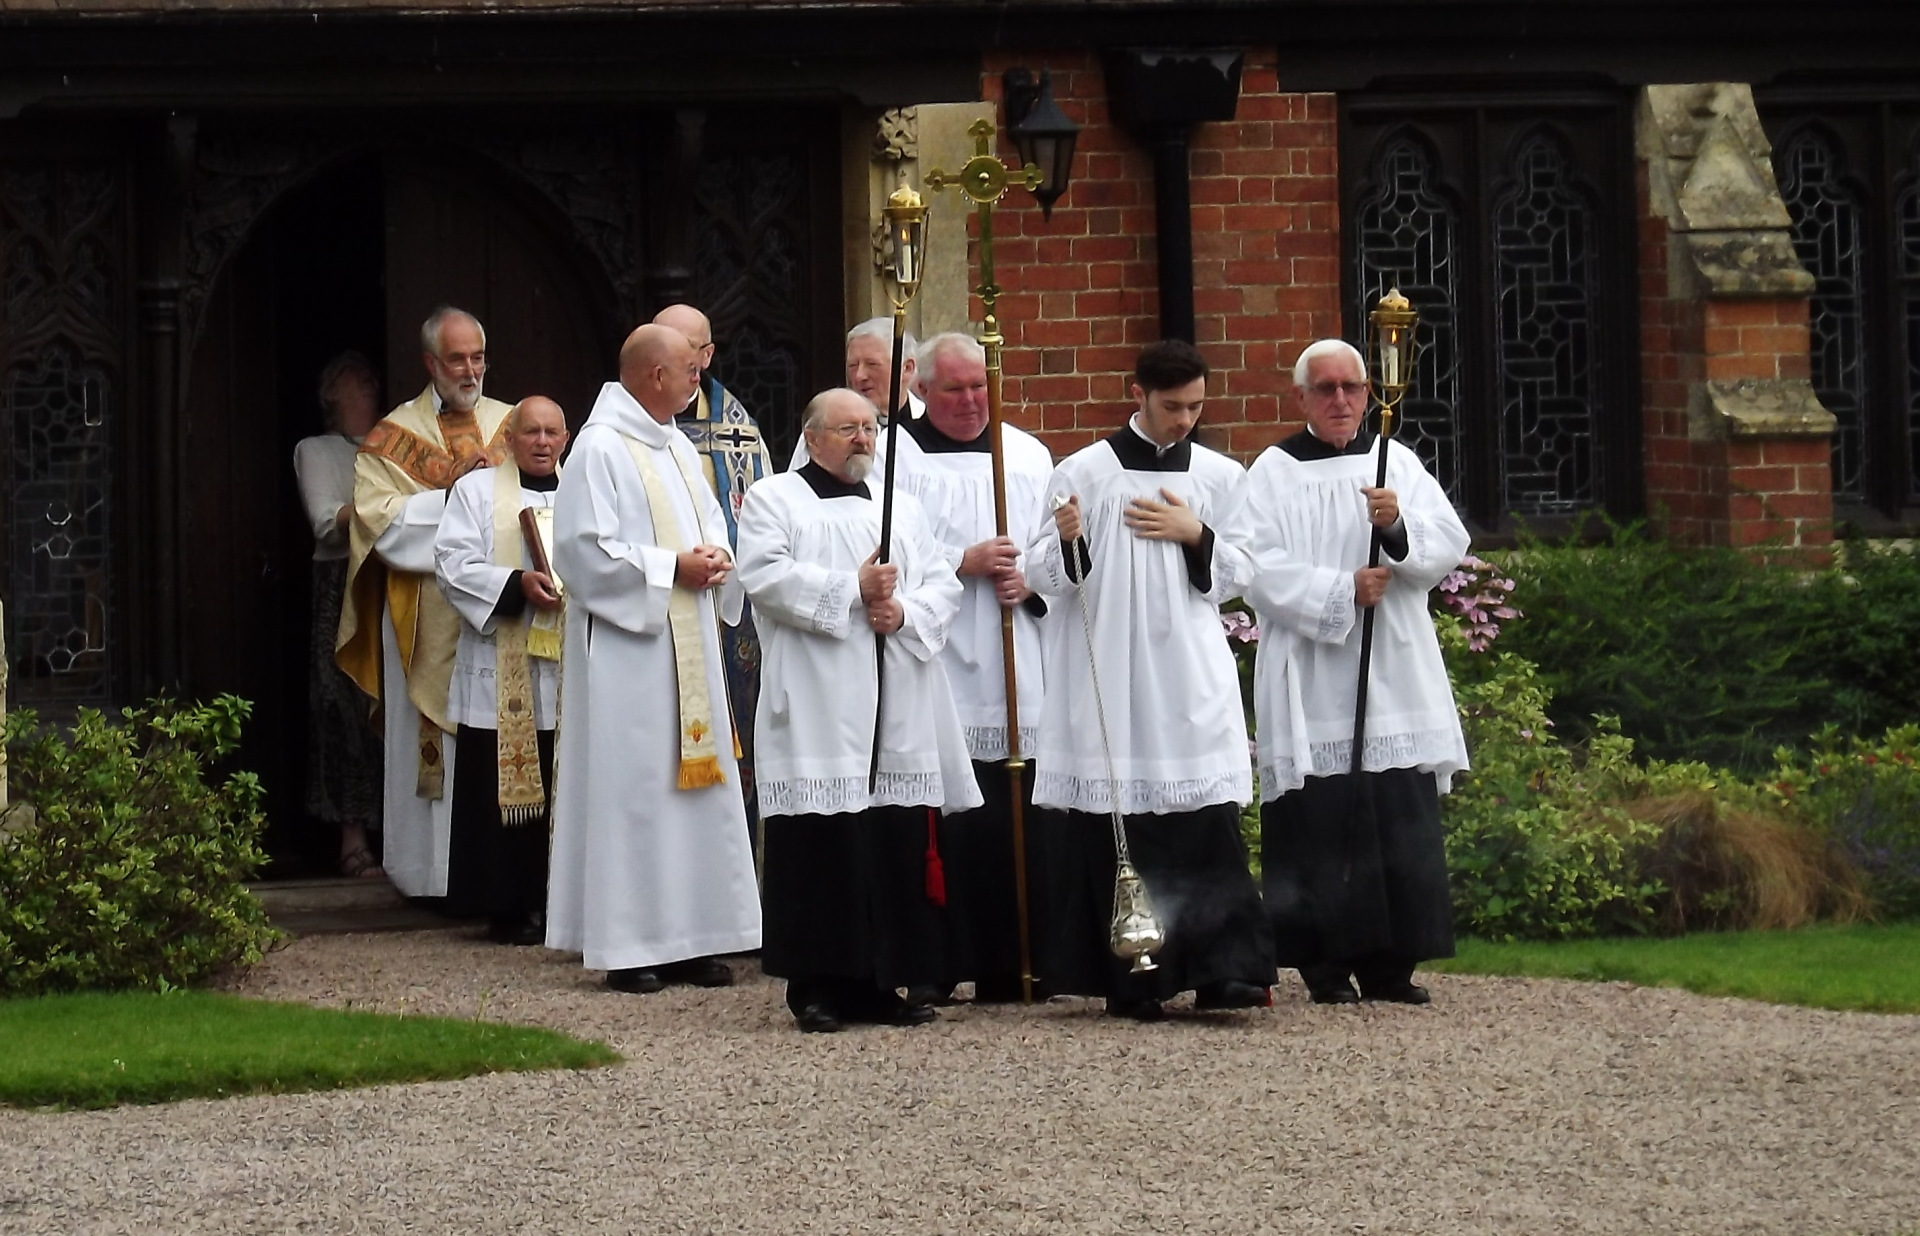 The procession moves off from the Cloister door